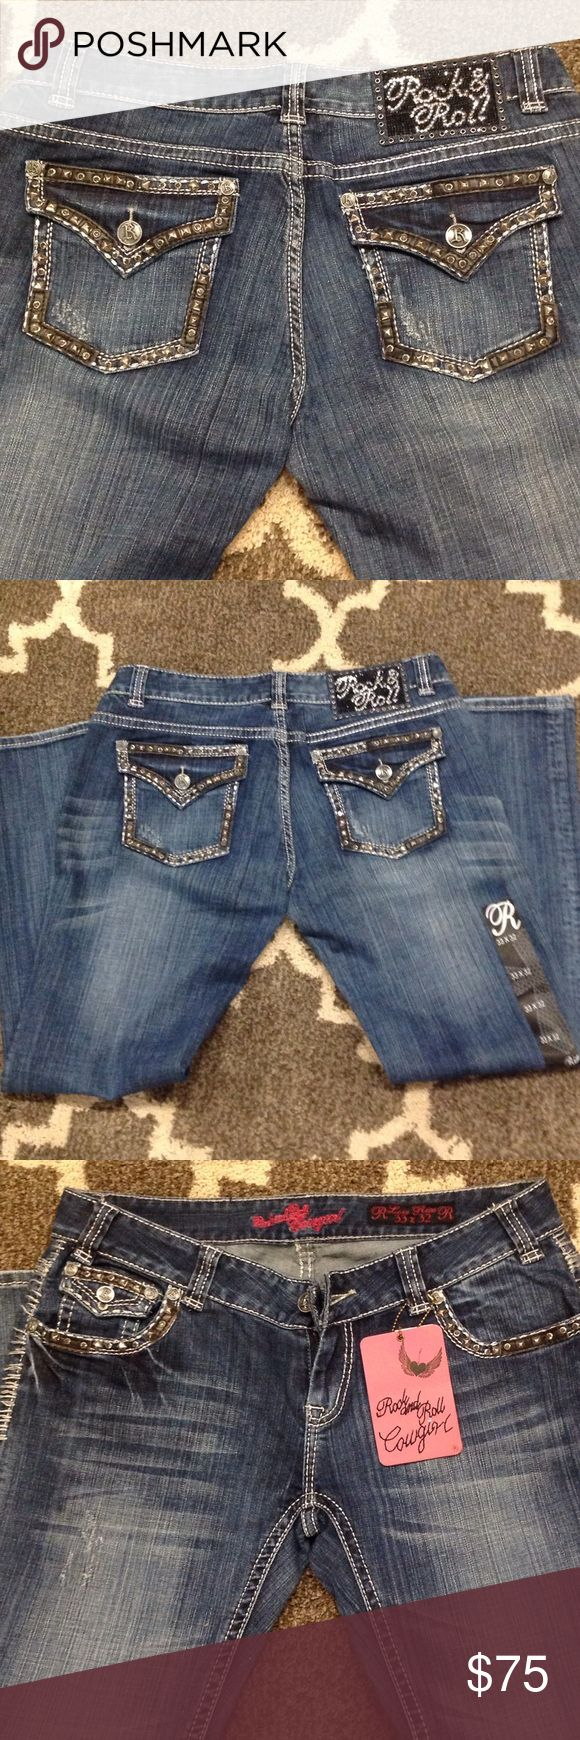 Rock and Roll Cowgirl Jeans OMG!! These are the badest Jeans ever! Never worn ever! These are a steal! I paid $98 on sale - originally $149!! Rock & Roll Cowgirl Jeans Boot Cut